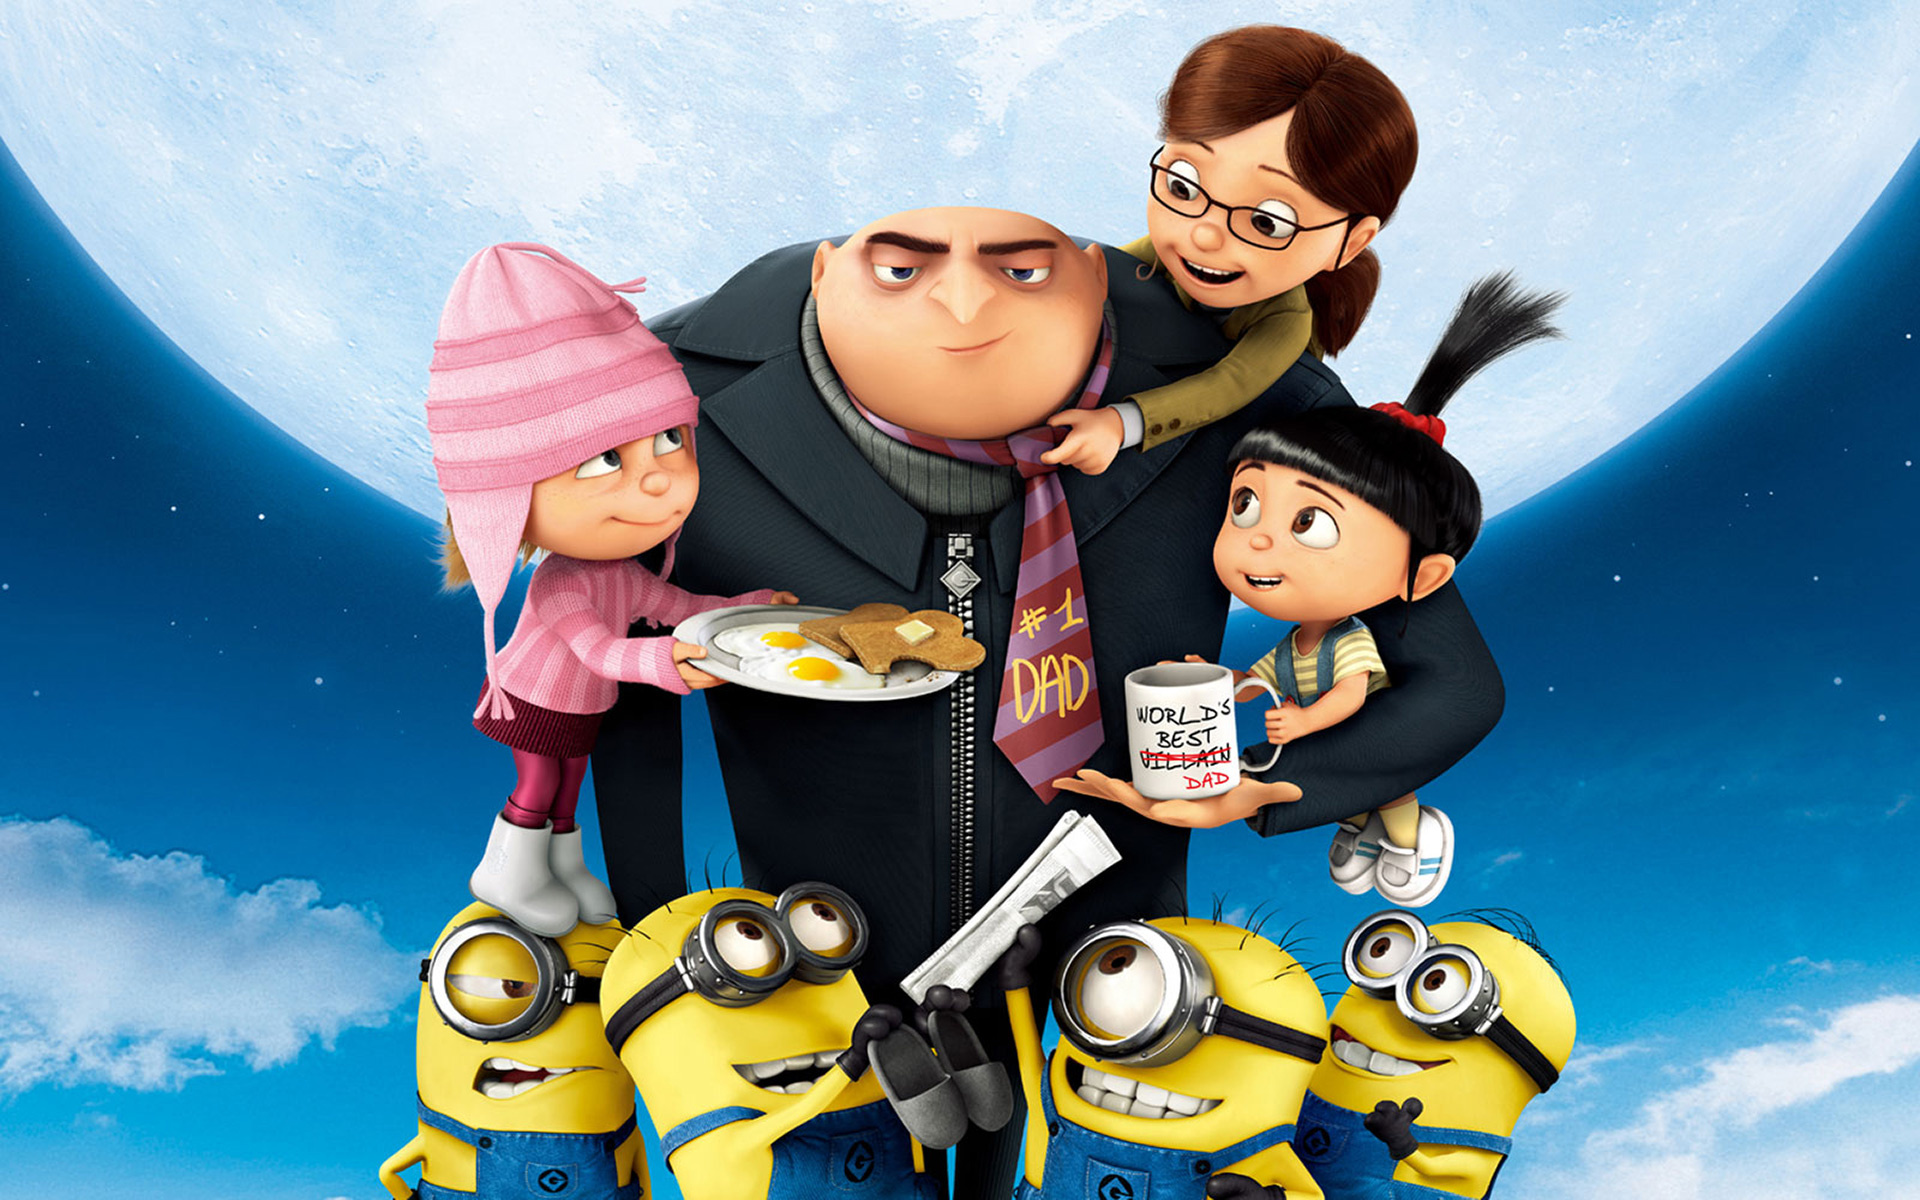 Despicable me 2 club images world best dad hd wallpaper and despicable me 2 club images world best dad hd wallpaper and background photos voltagebd Gallery